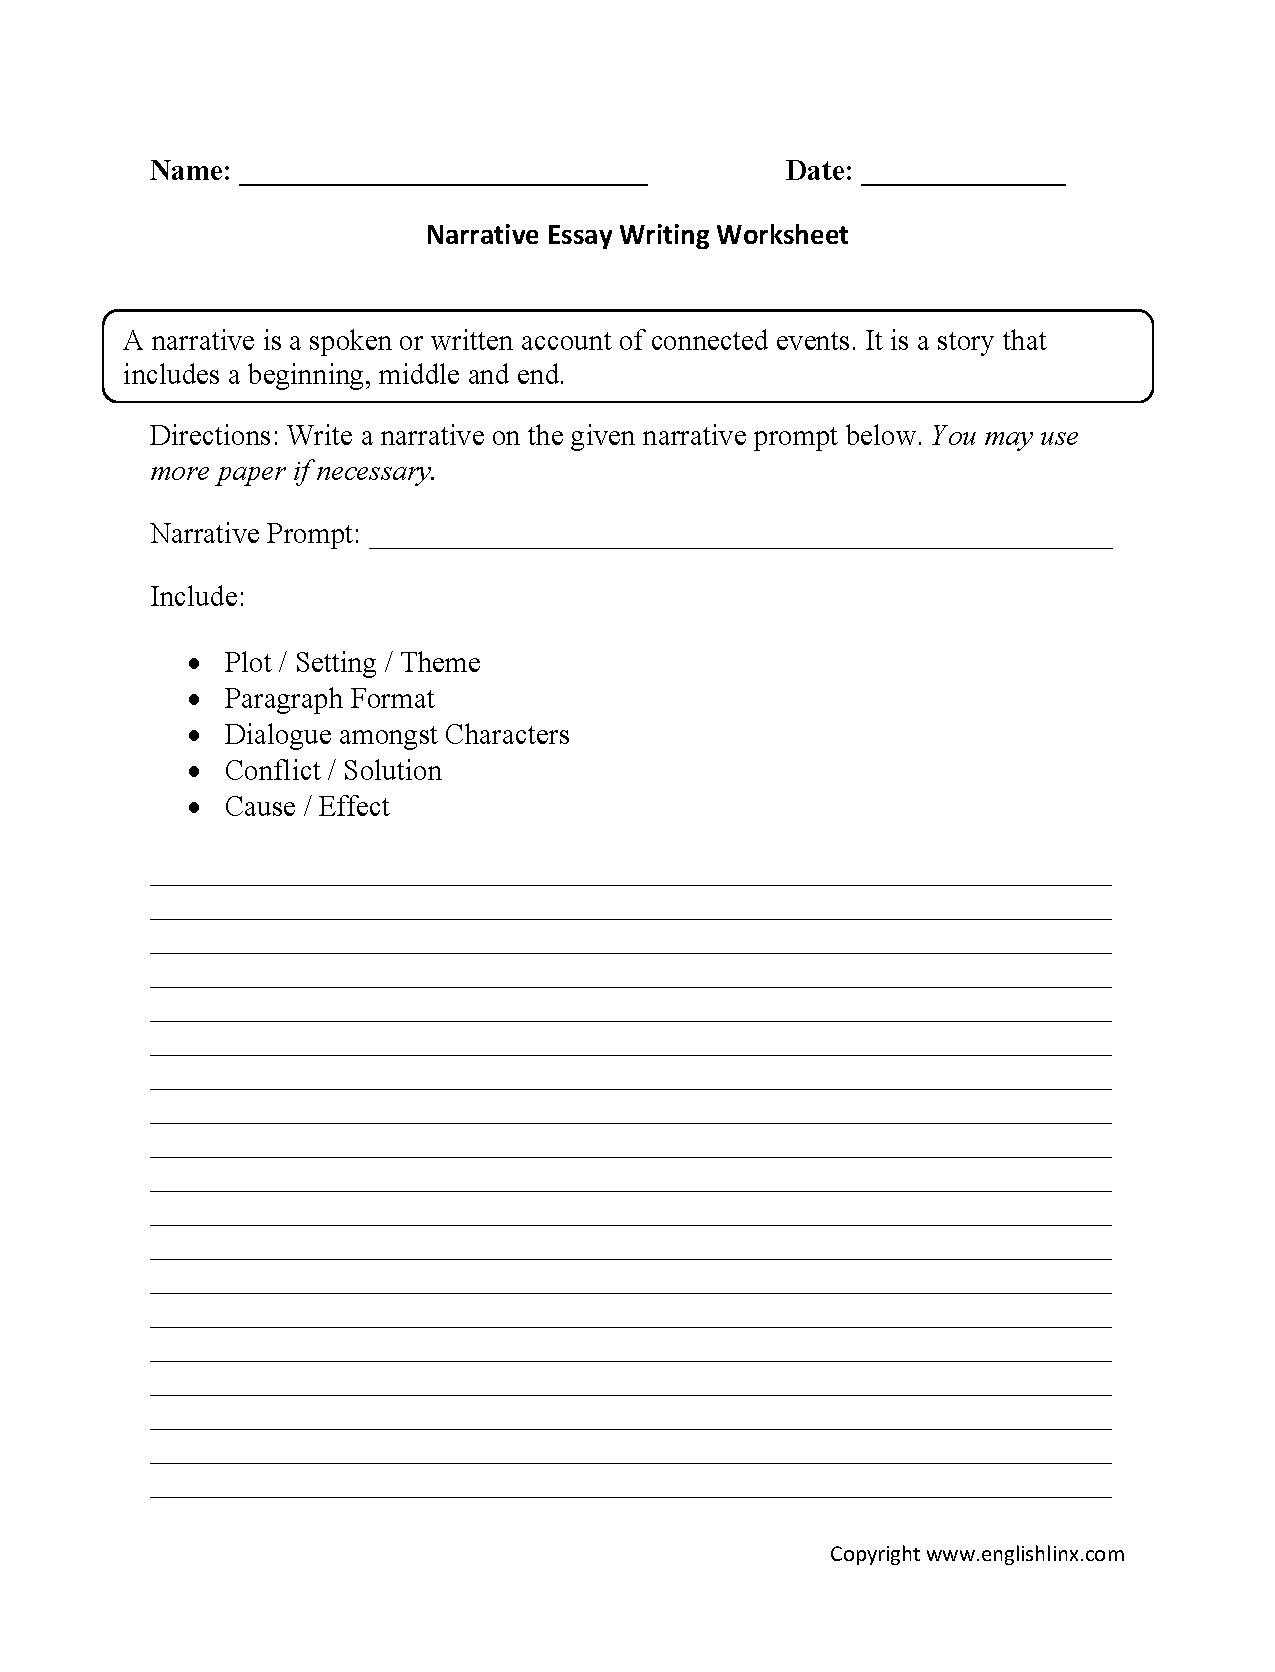 Writing Worksheets – 9th Grade Language Arts Worksheets